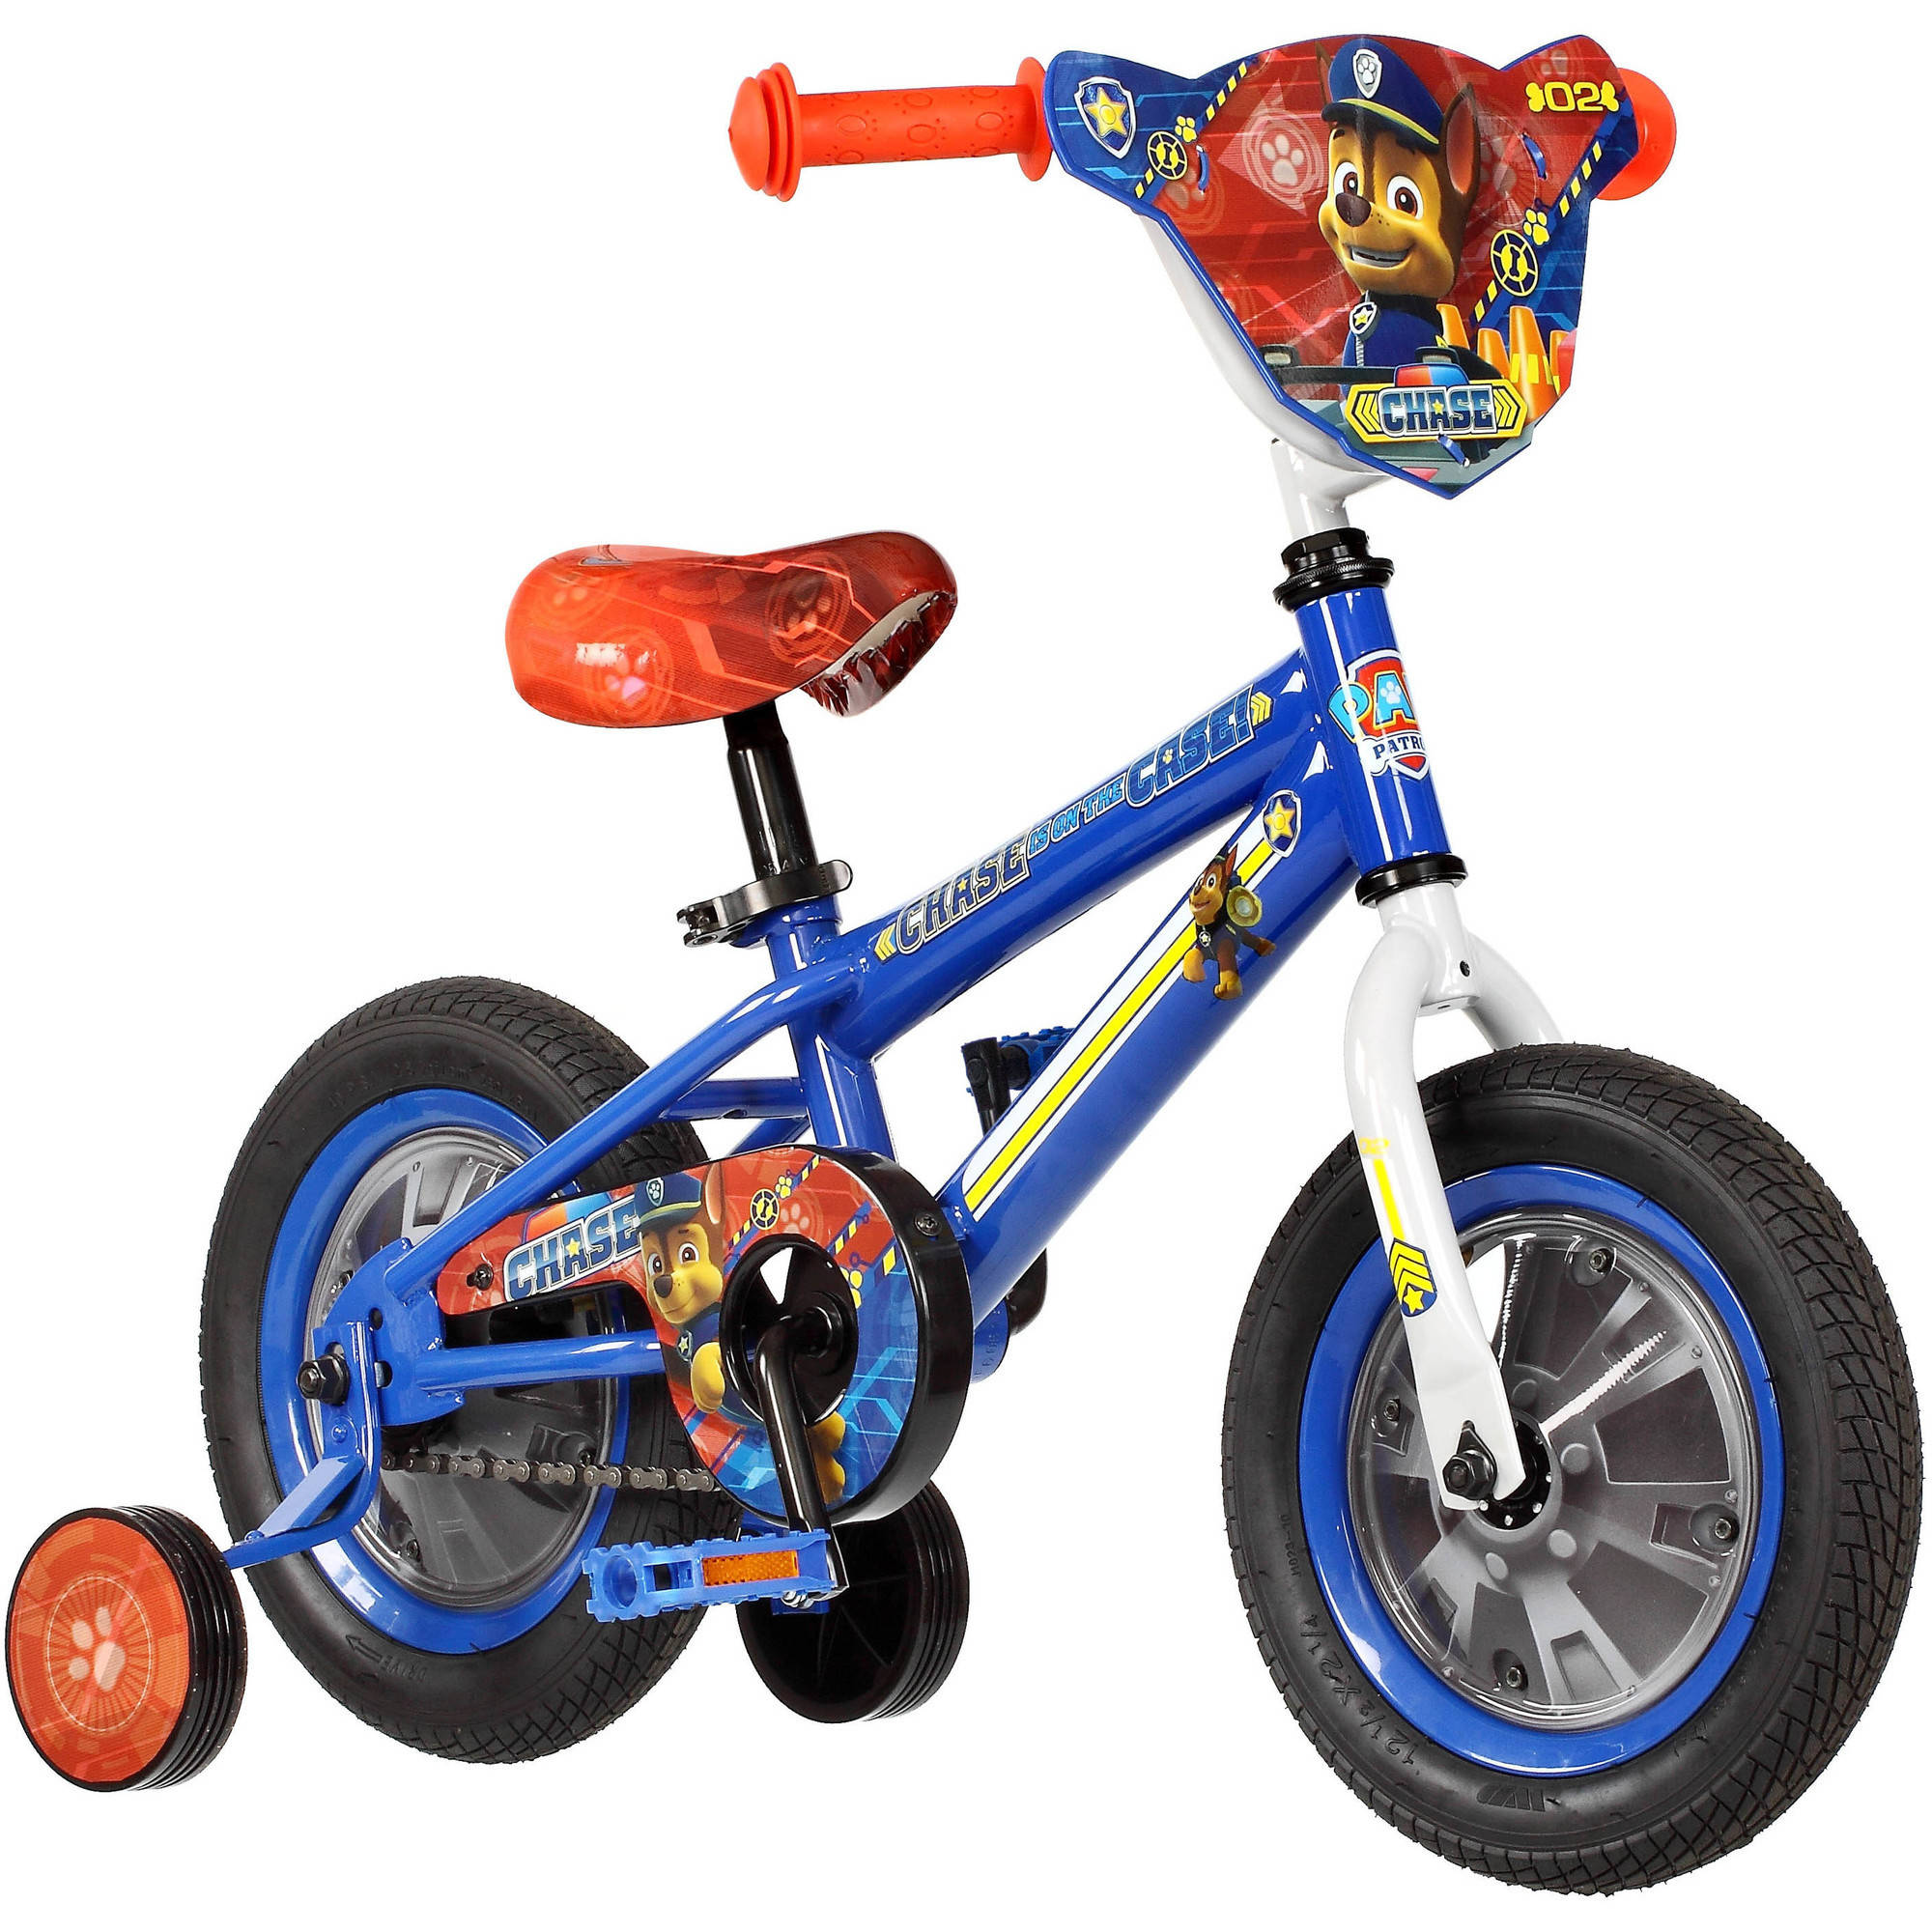 "12"" Paw Patrol Bike Featuring Chase by Pacific Cycle"